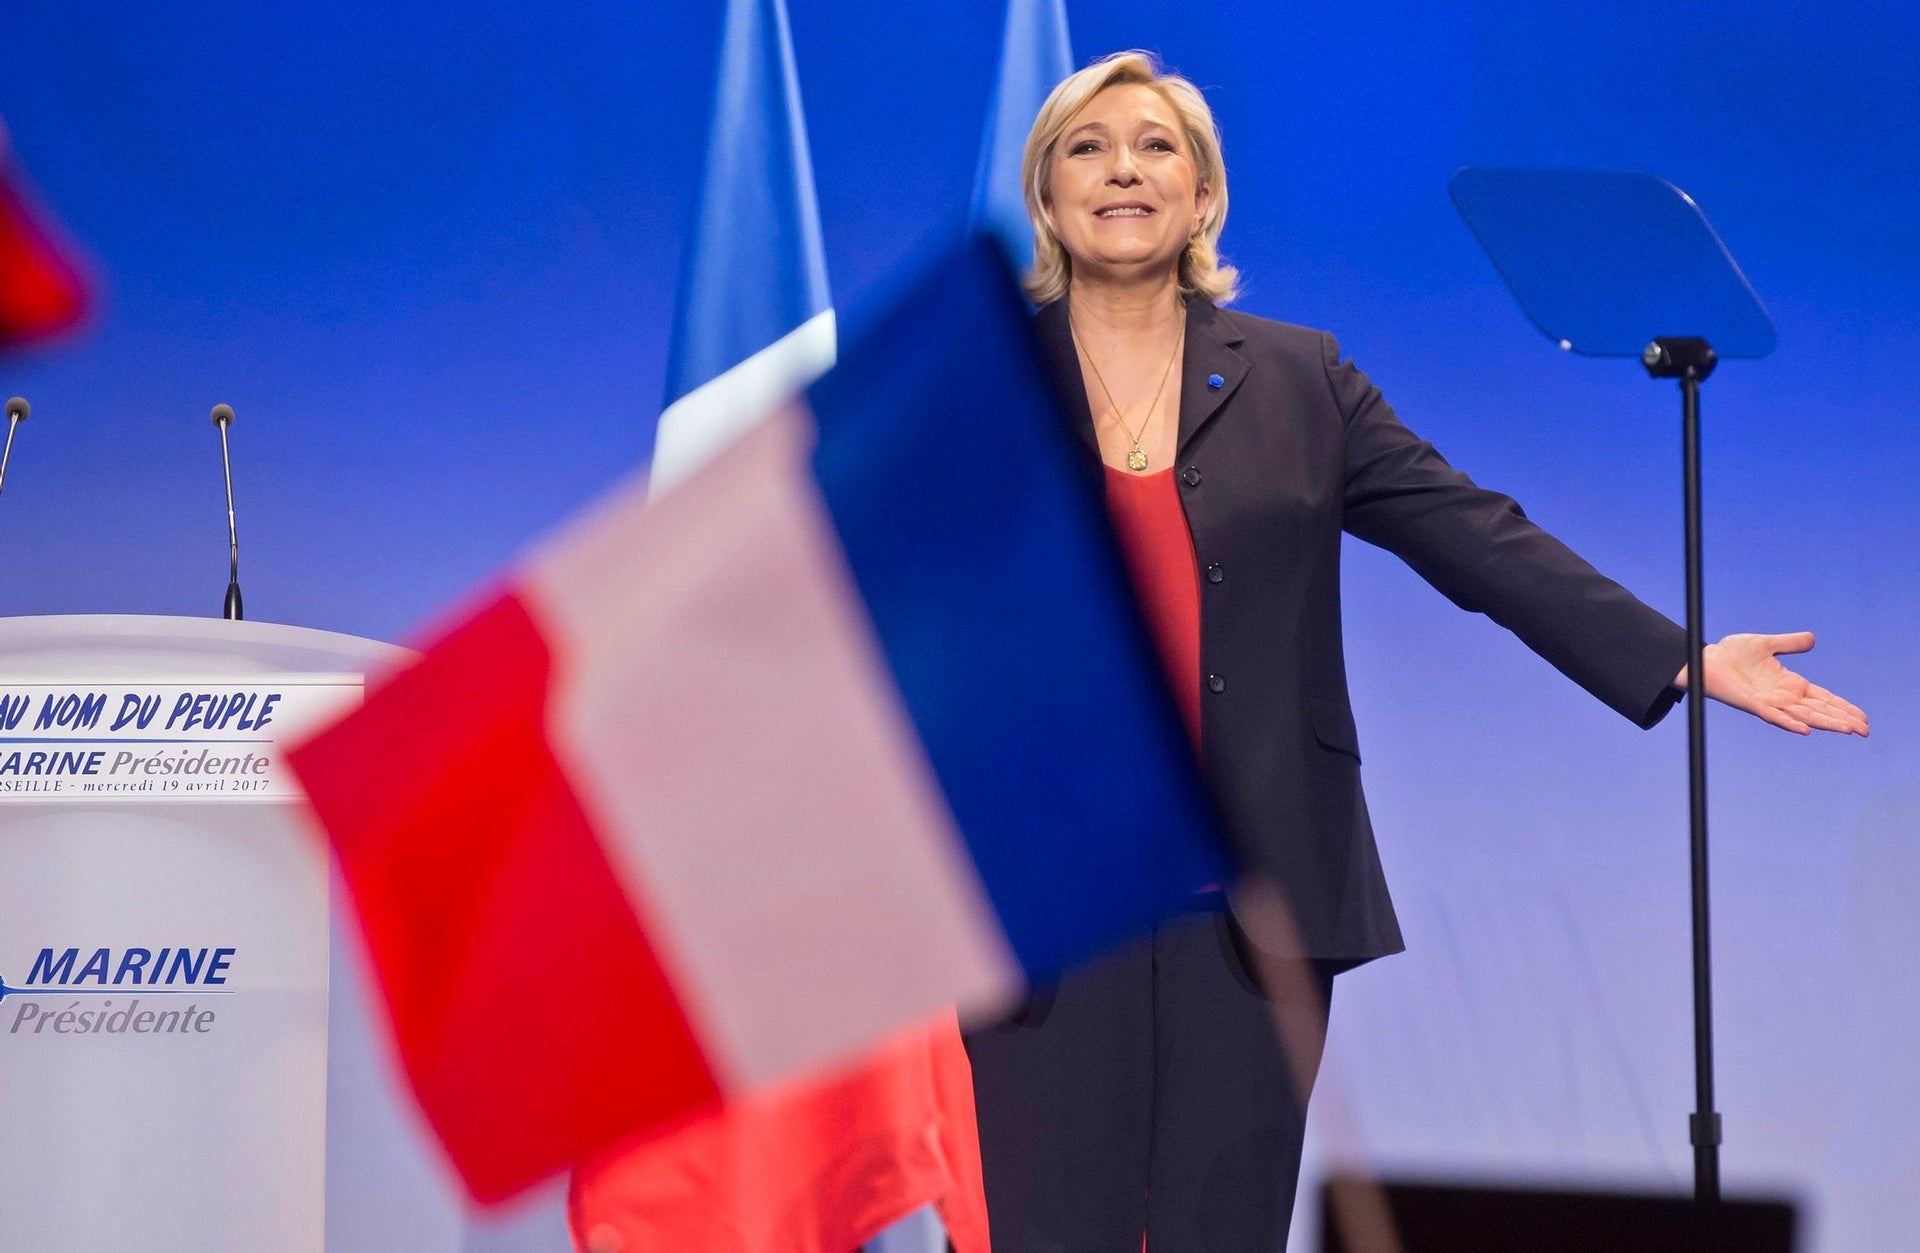 Far-right candidate Marine Le Pen at a rally in Marseille, southern France, April 19, 2017.